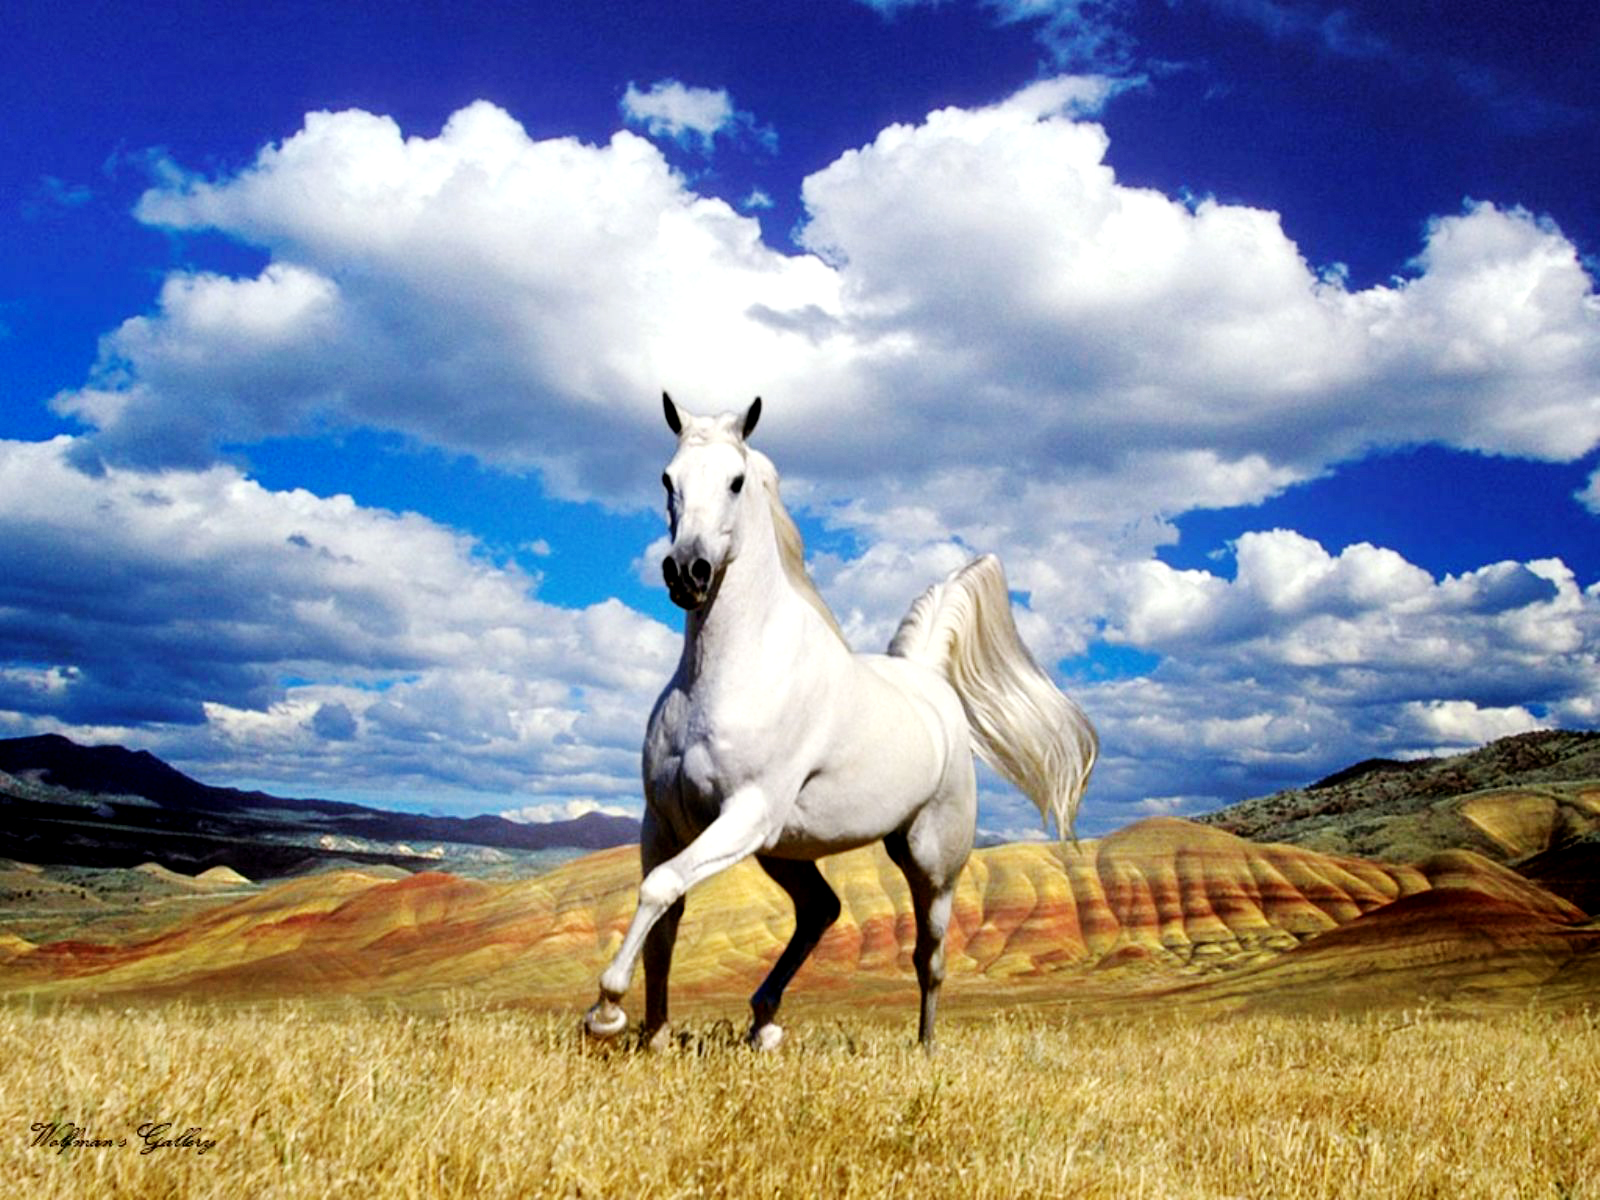 White horses hd wallpapers desktop wallpapers for Wallpaper mare hd